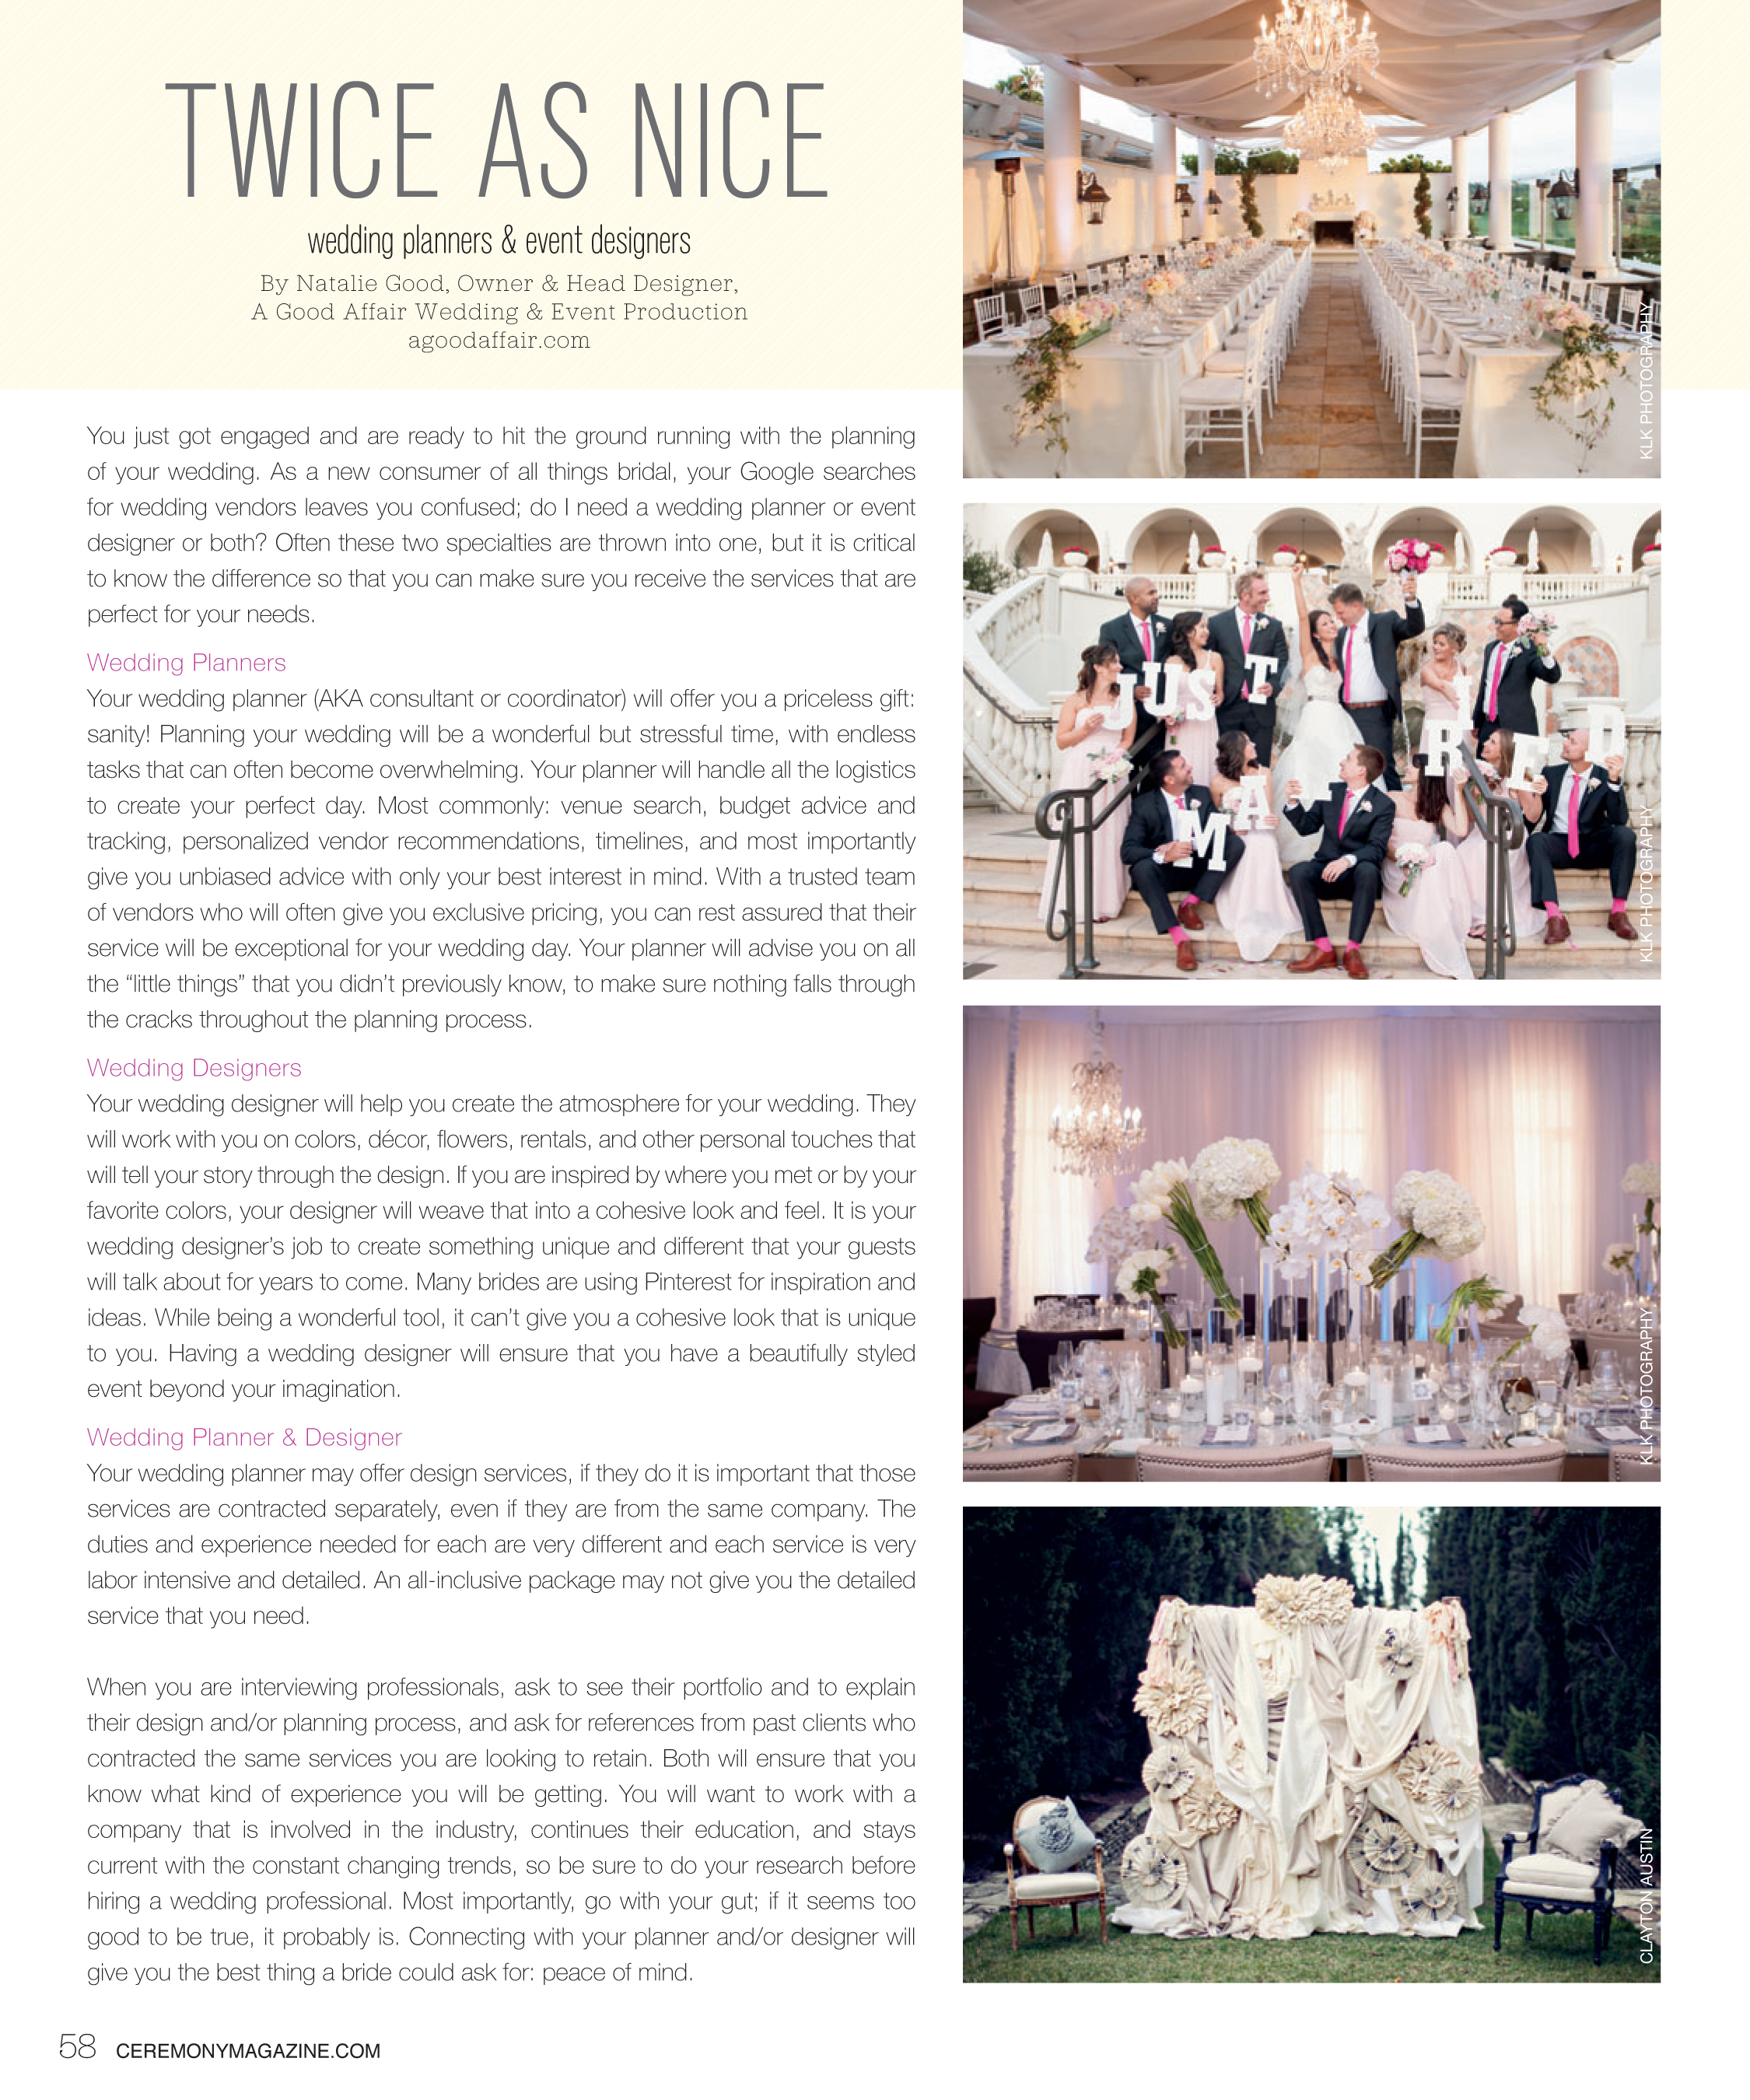 Ceremony Magazine, A Good Affair Wedding & Event Production